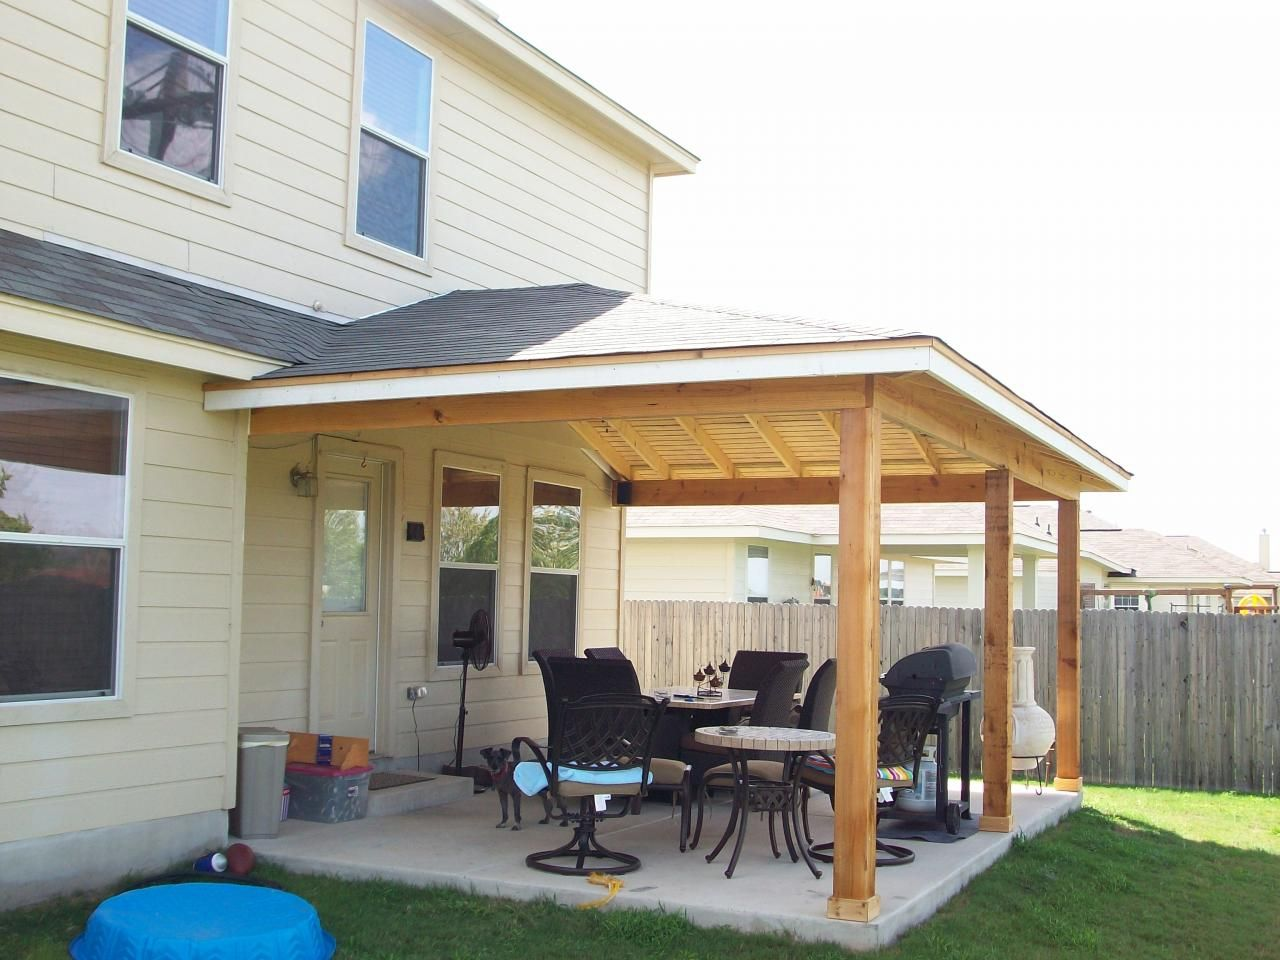 patio designs | ... patio covers pictures video plans designs ... - Patio Cover Plans Designs